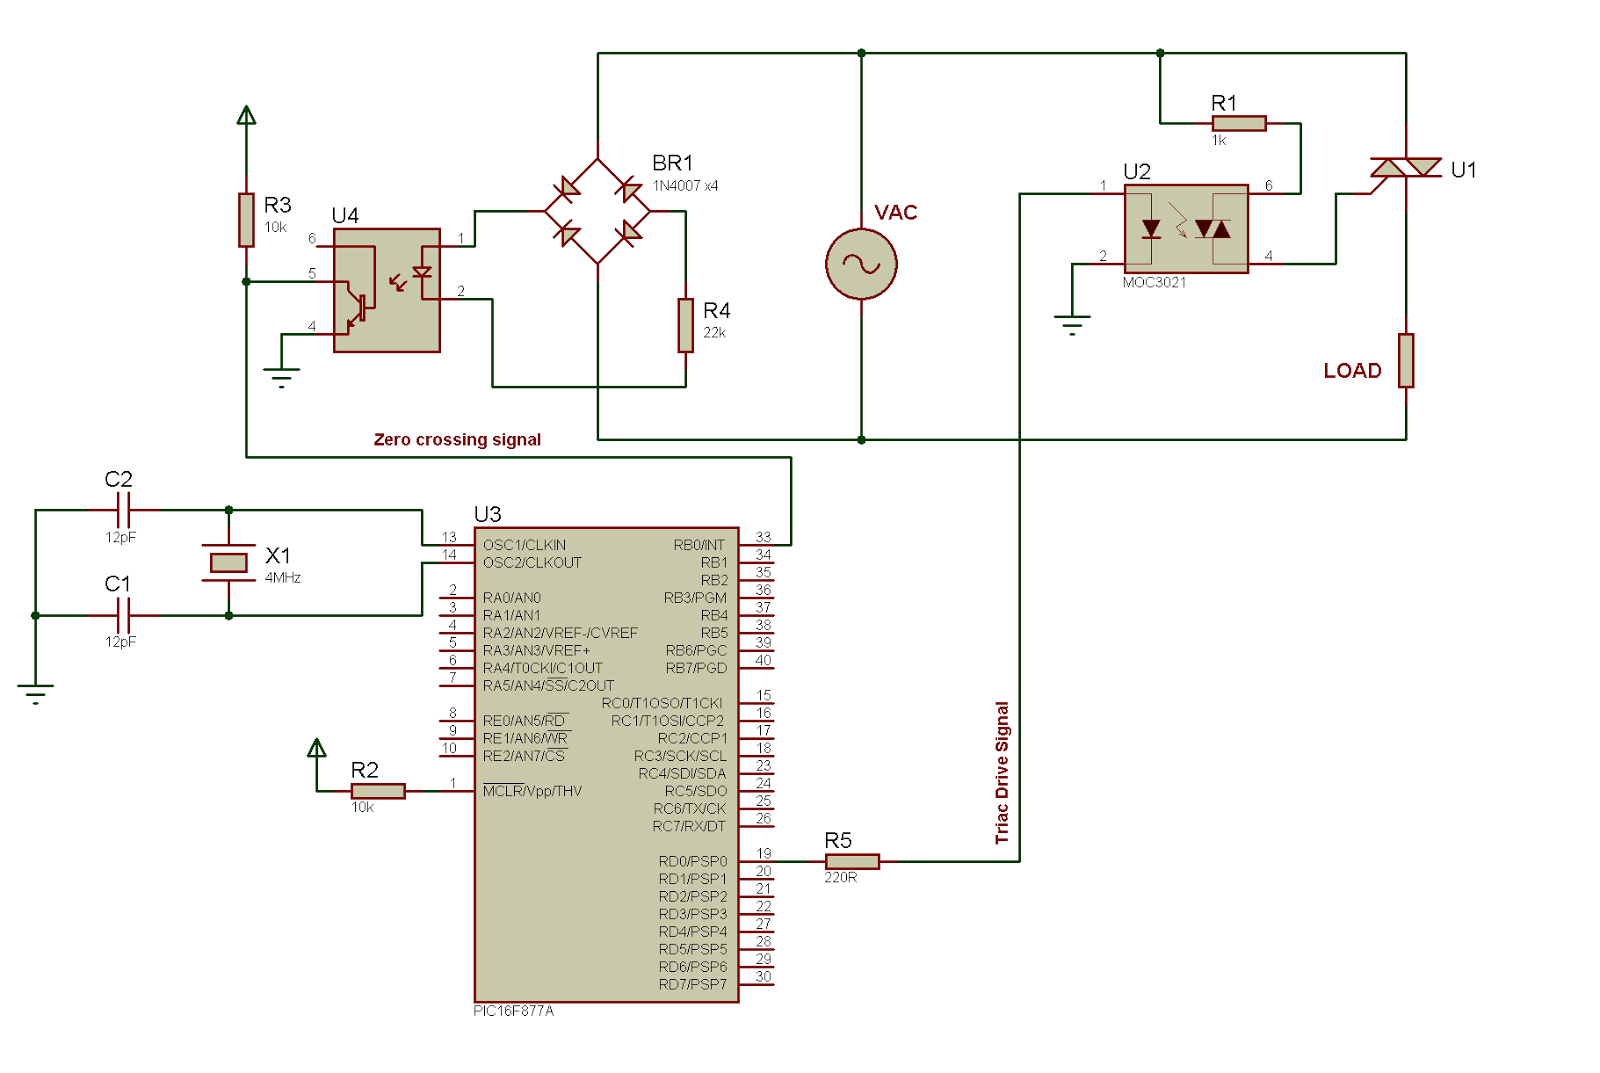 Trigger Circuit For Thyristor Search Wiring Diagrams Scr Diagram Tahmid S Blog Ac Power Control With Phase Pn Junctions